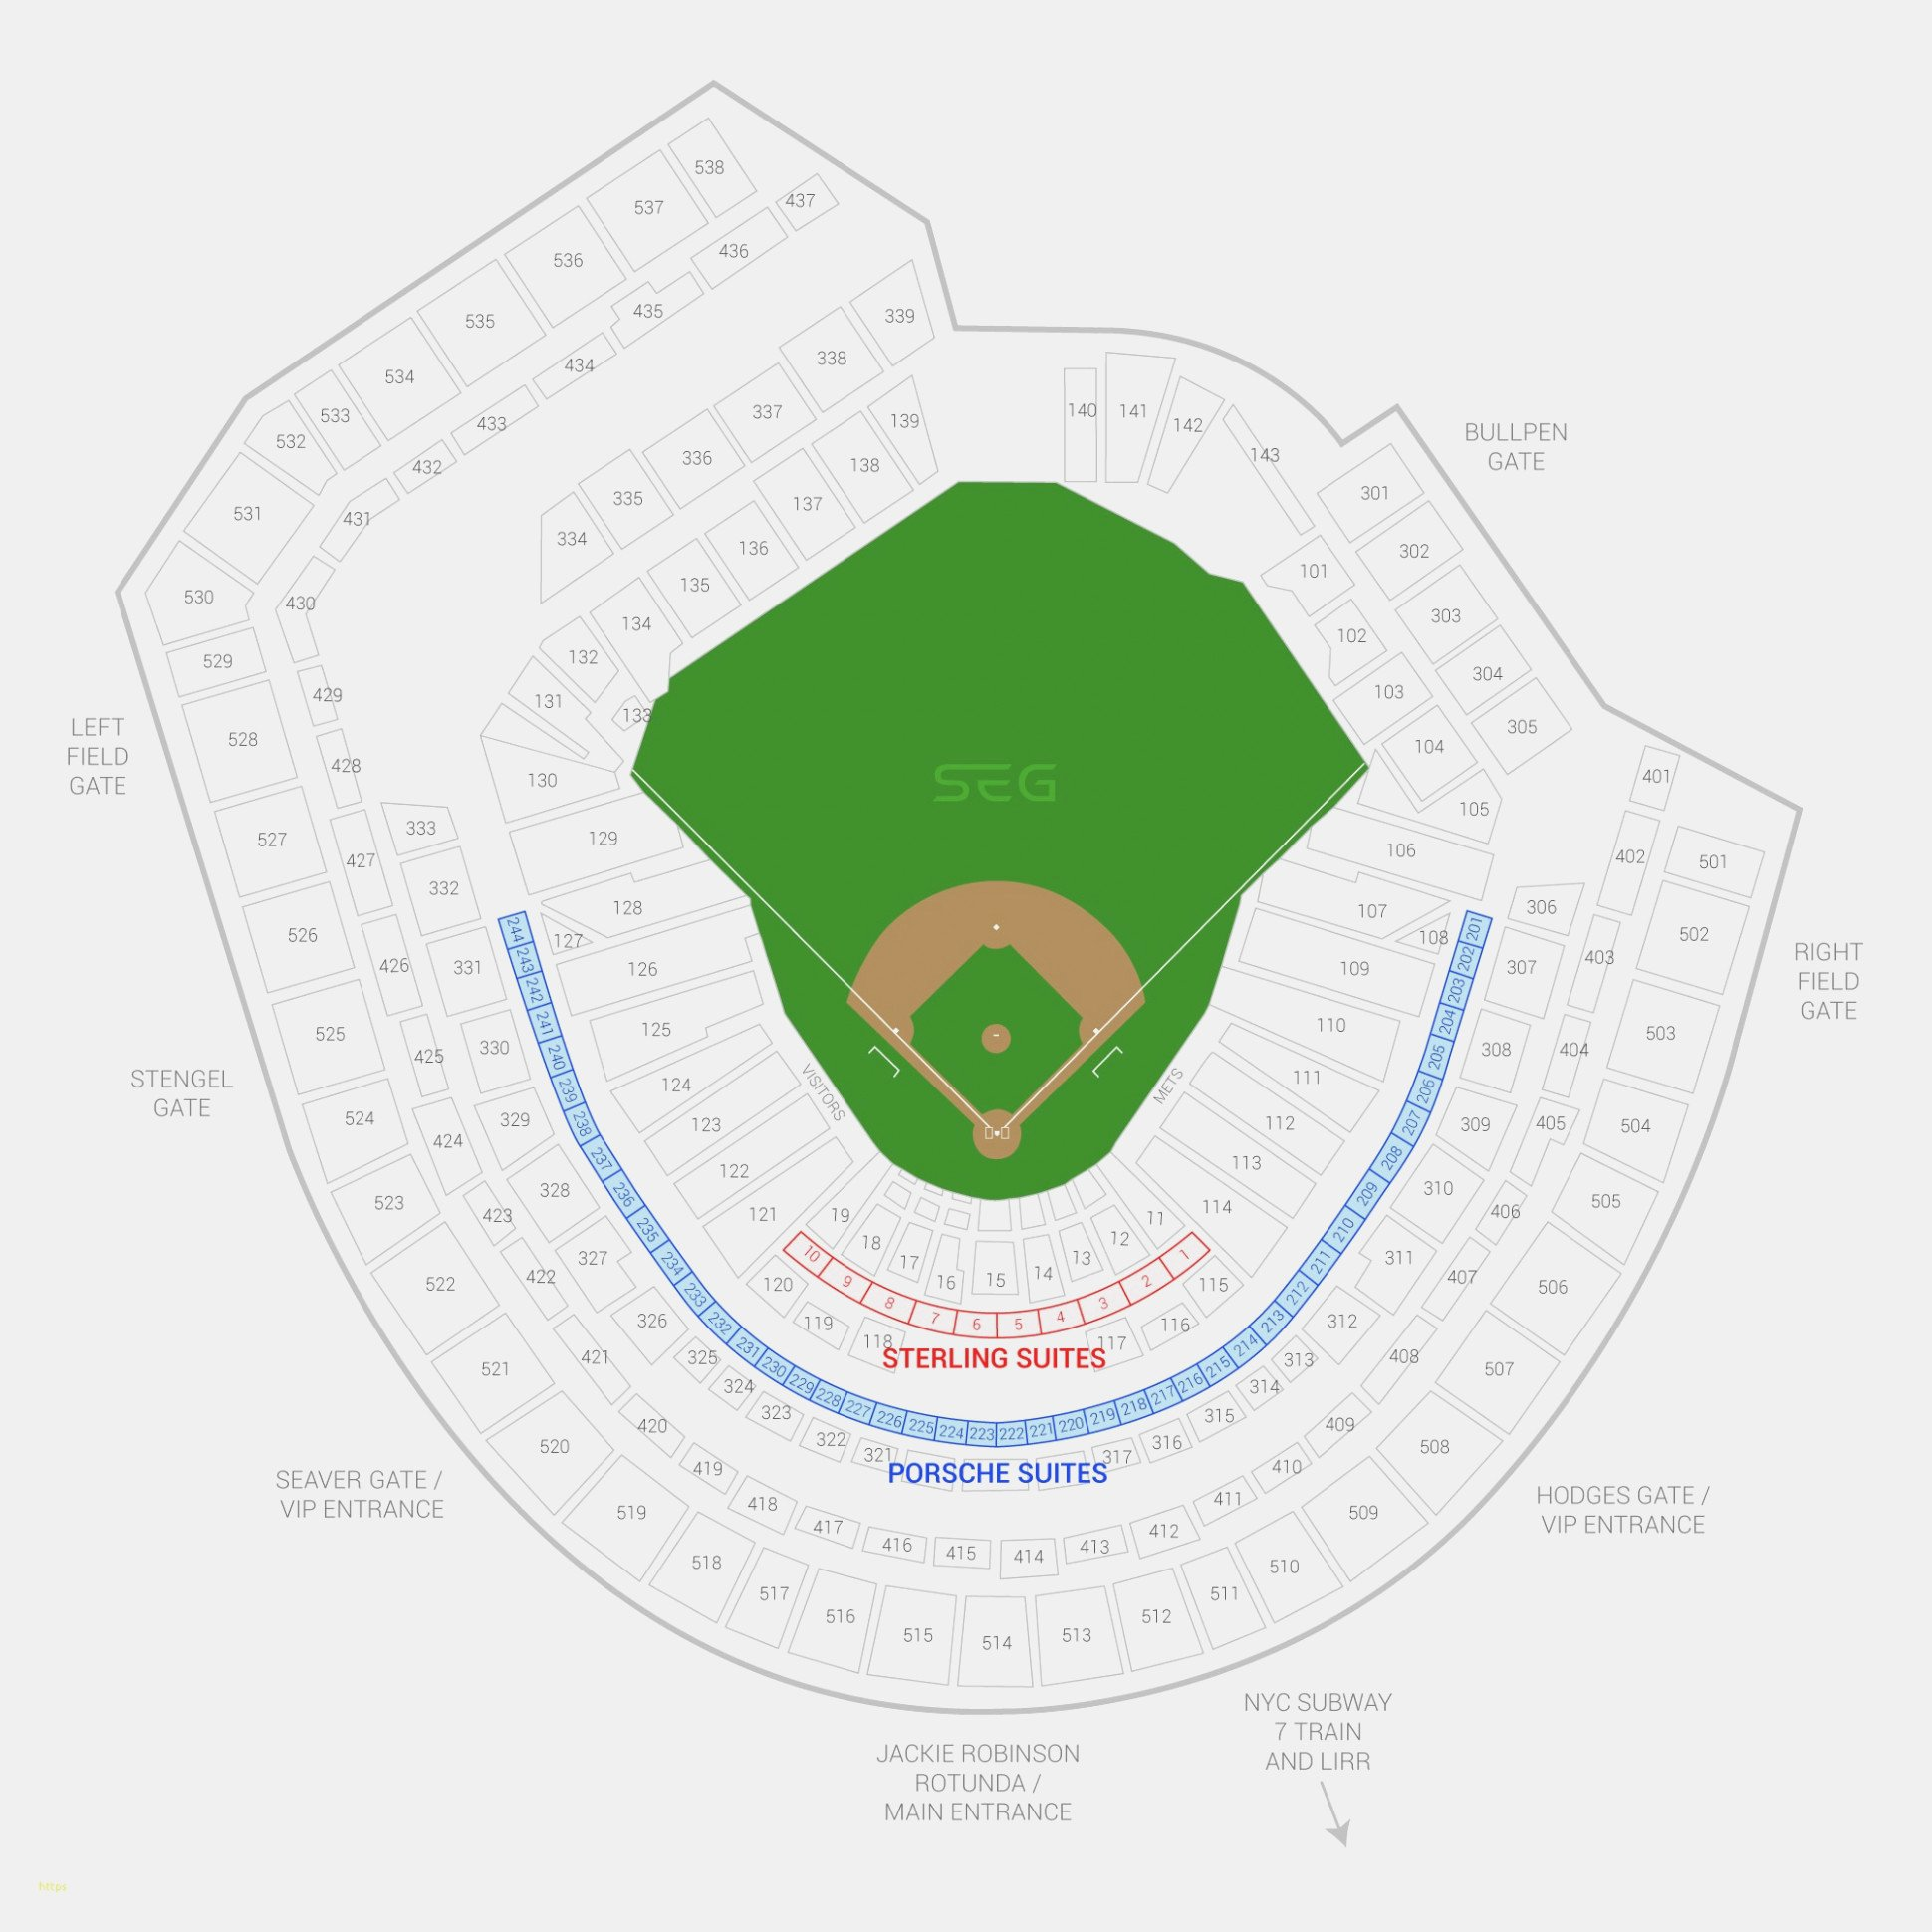 Wrigley Seating Chart Seat Numbers Beautiful Wrigley Field Seating Chart with Seat Numbers Wallpaperall